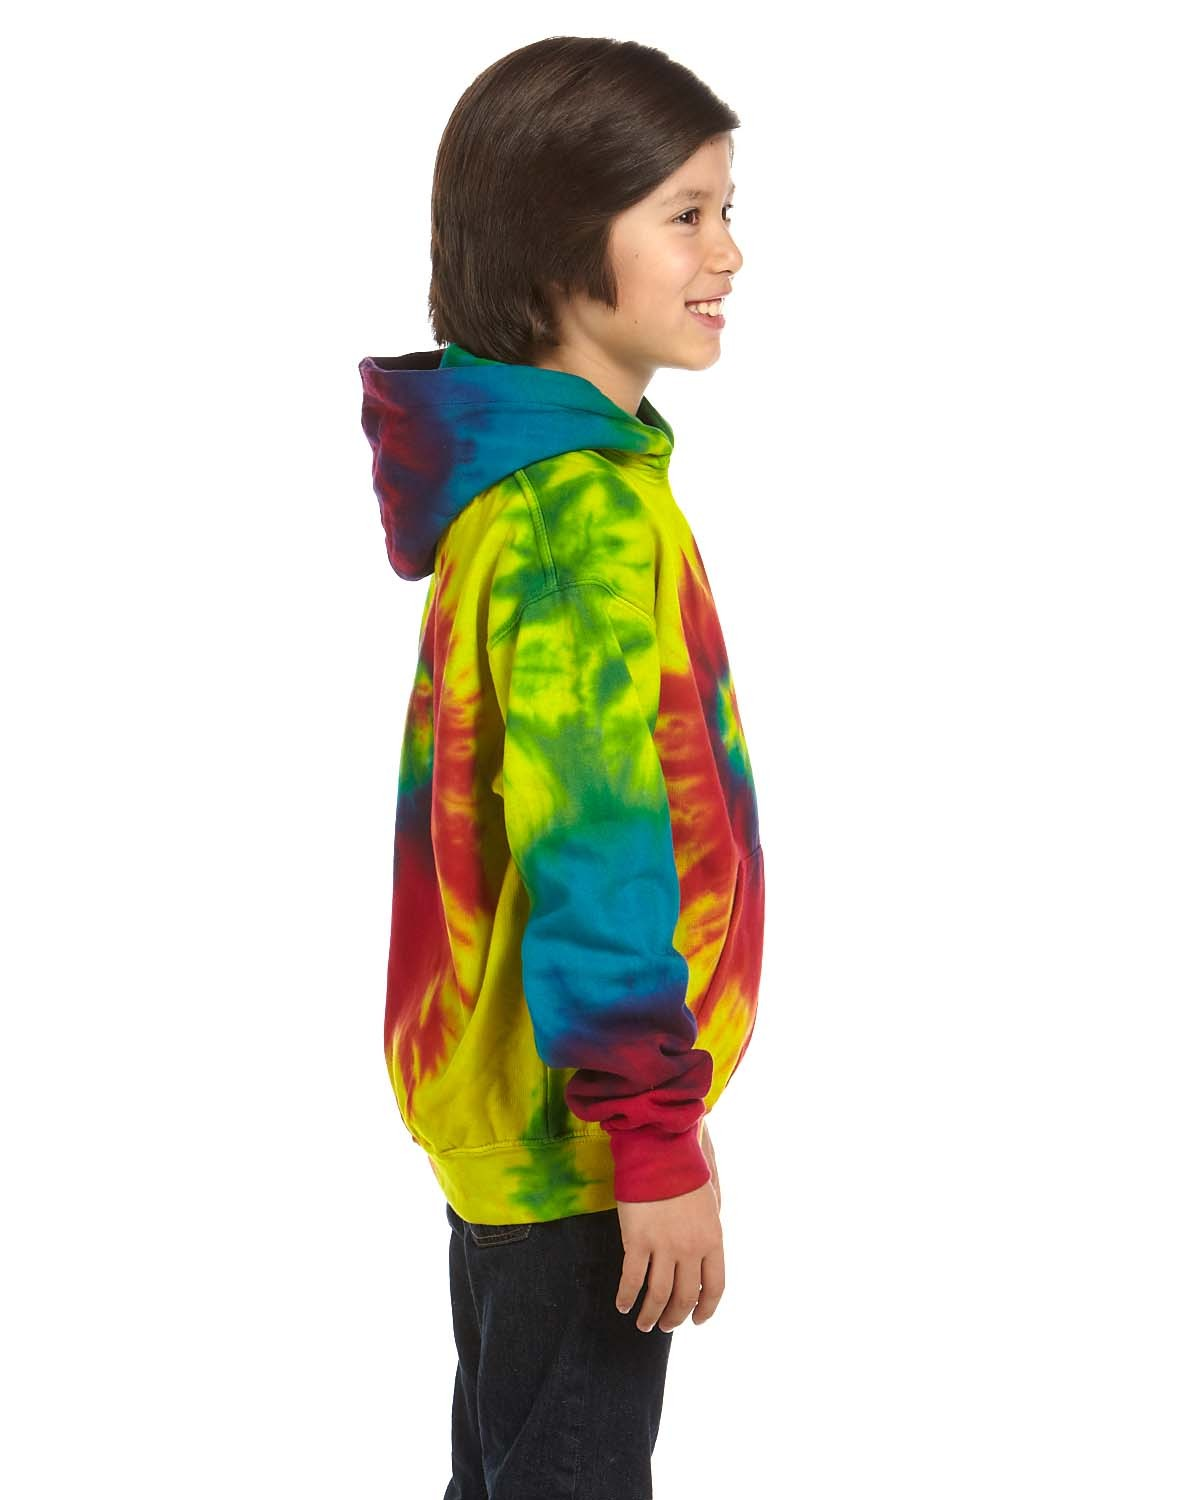 CD877Y Tie-Dye REACTIVE RAINBOW